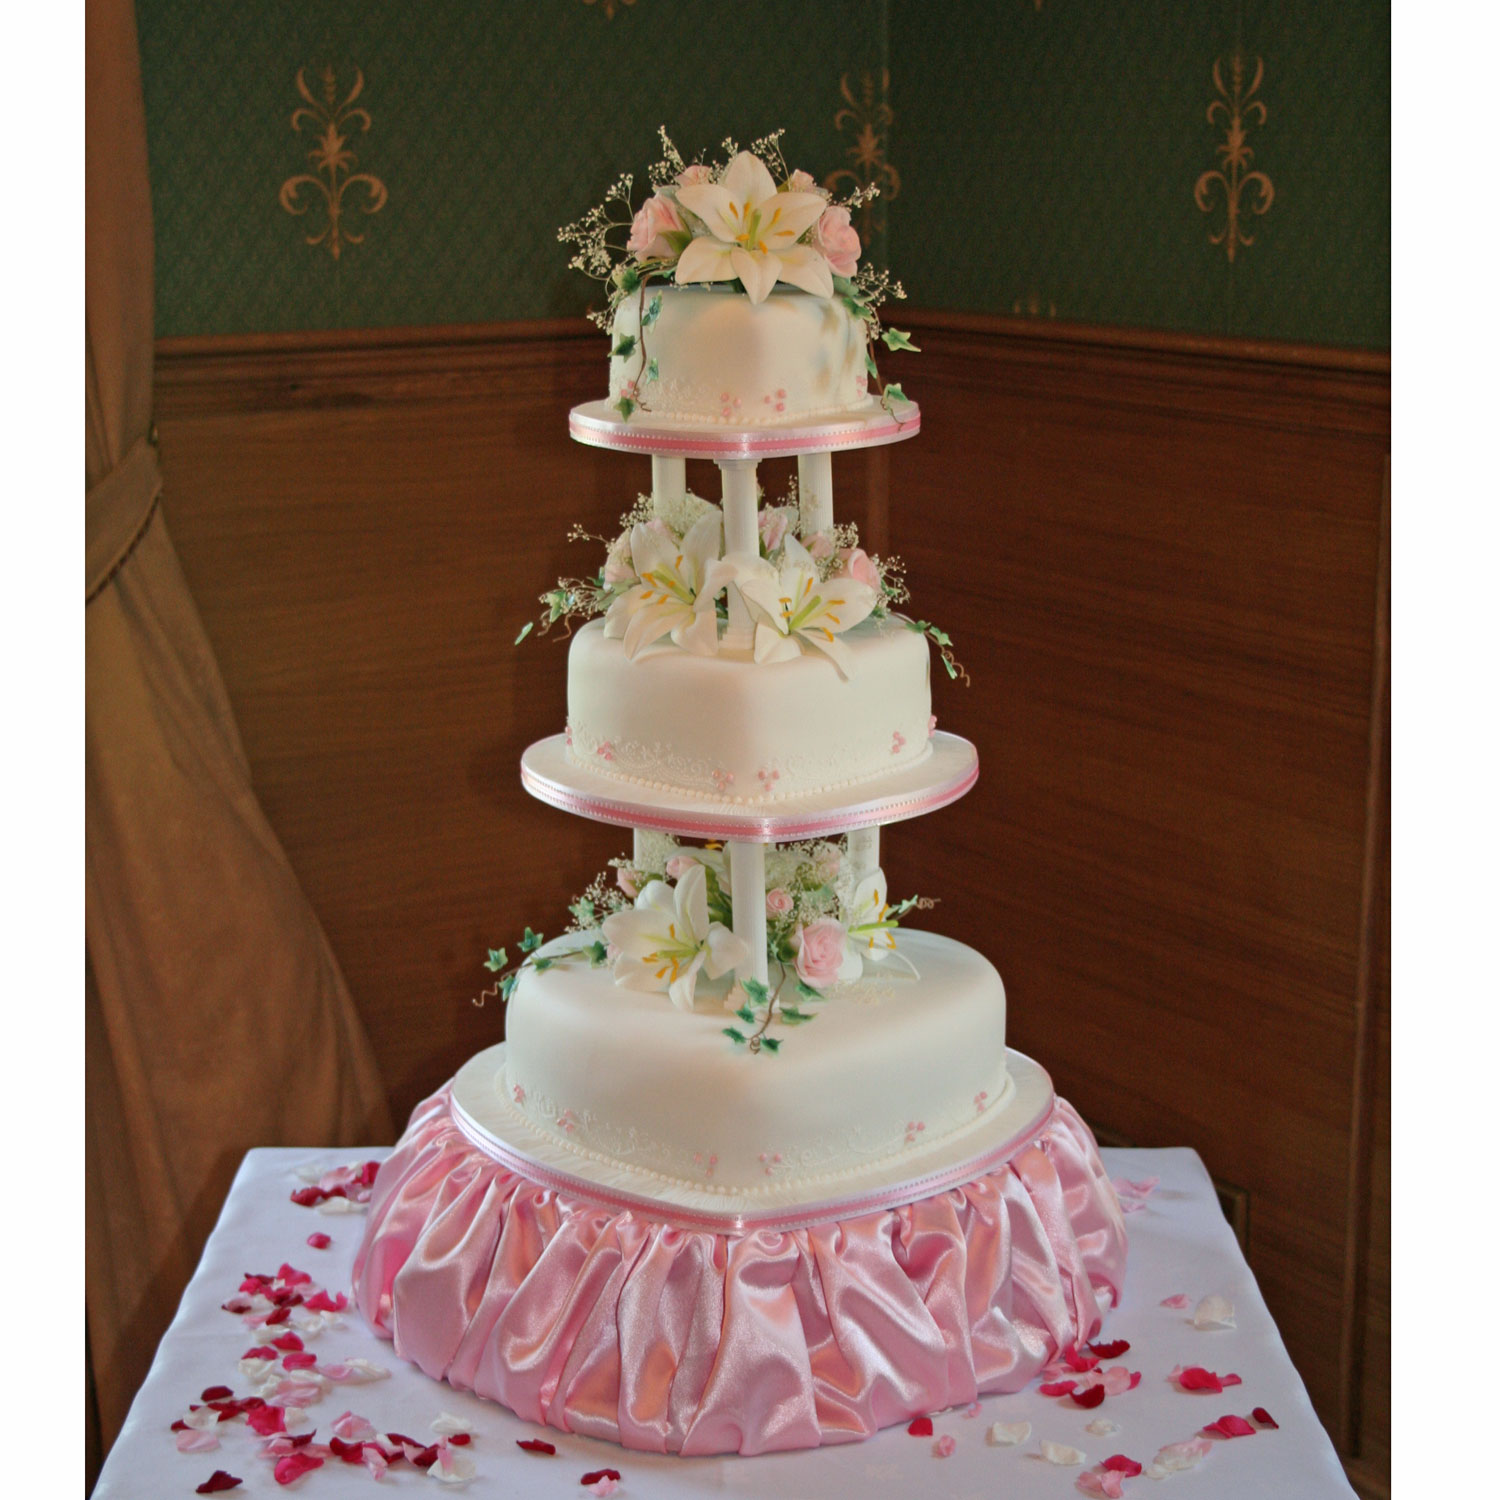 Sam Wedding Cake.Sam Love Heart Shaped Wedding Cake Tiers With Hand Made Flowers